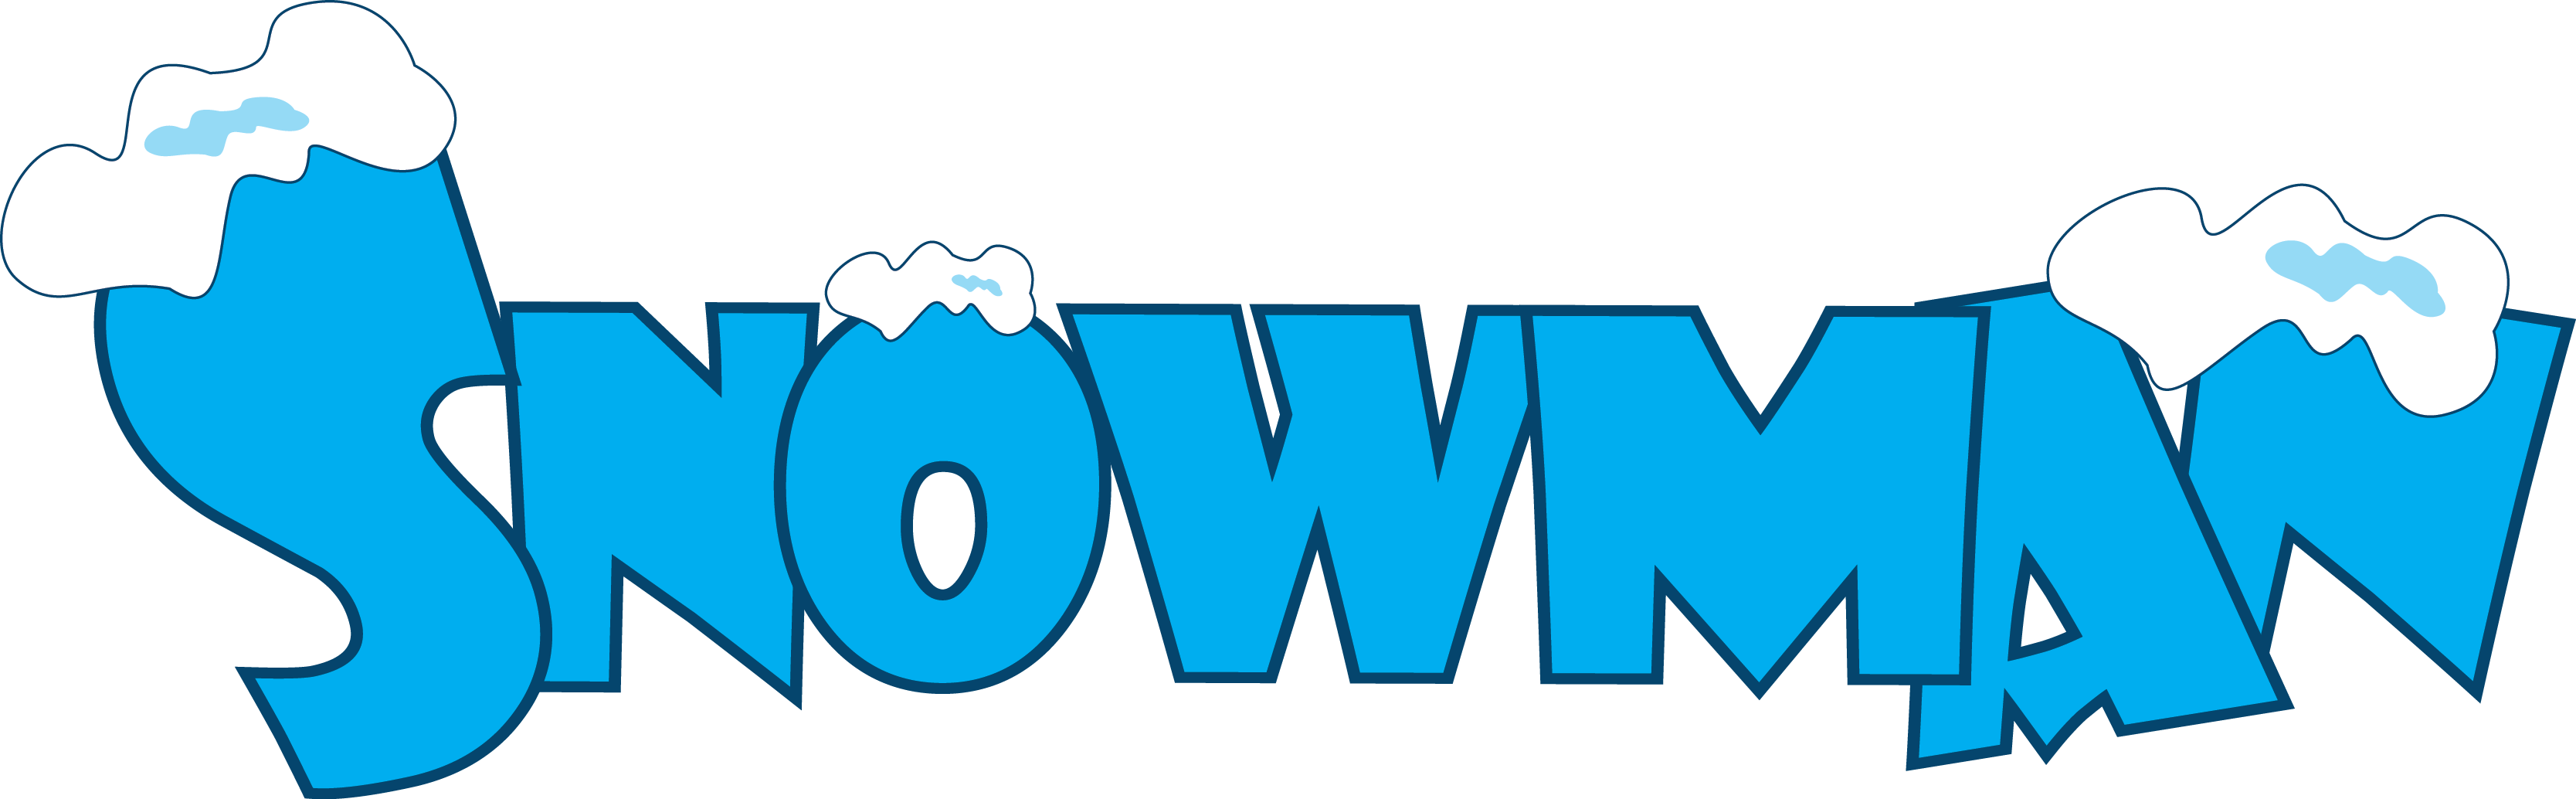 Snowman Is An Australian Owned Homes Services Company We Have